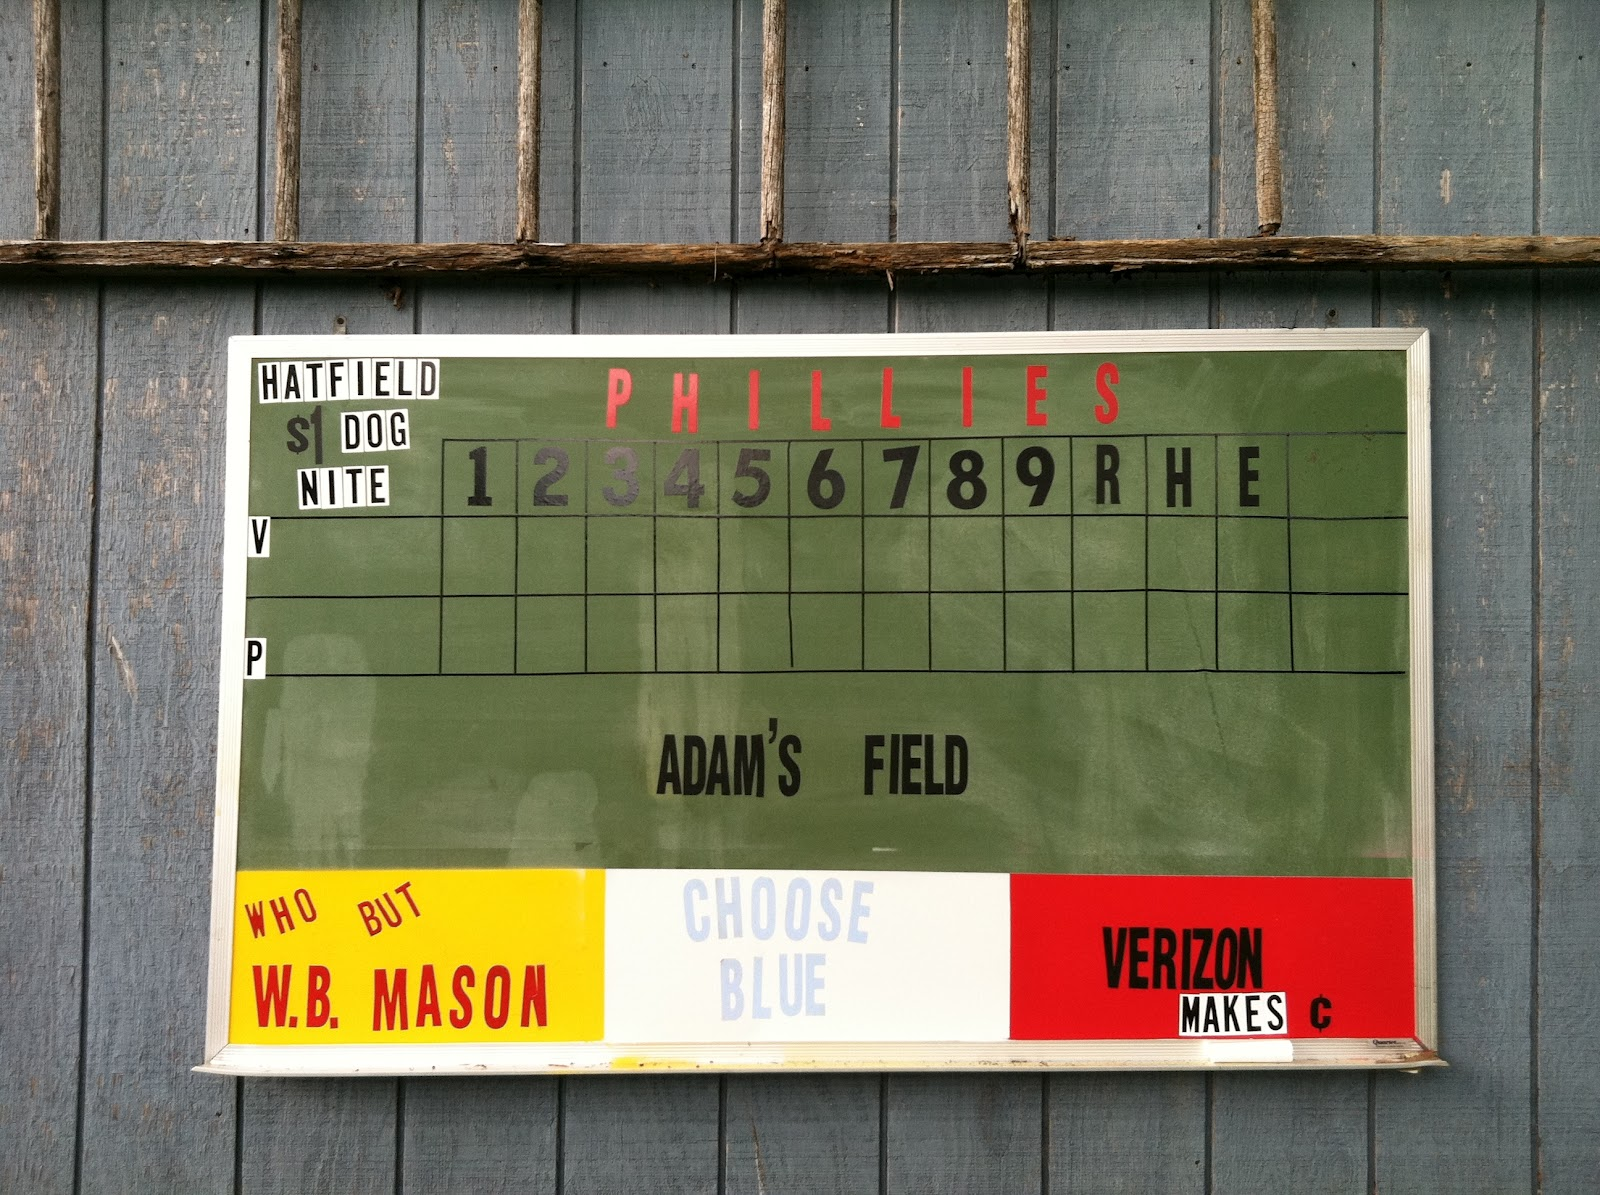 frugal finds from your frugal friend homemade scoreboard